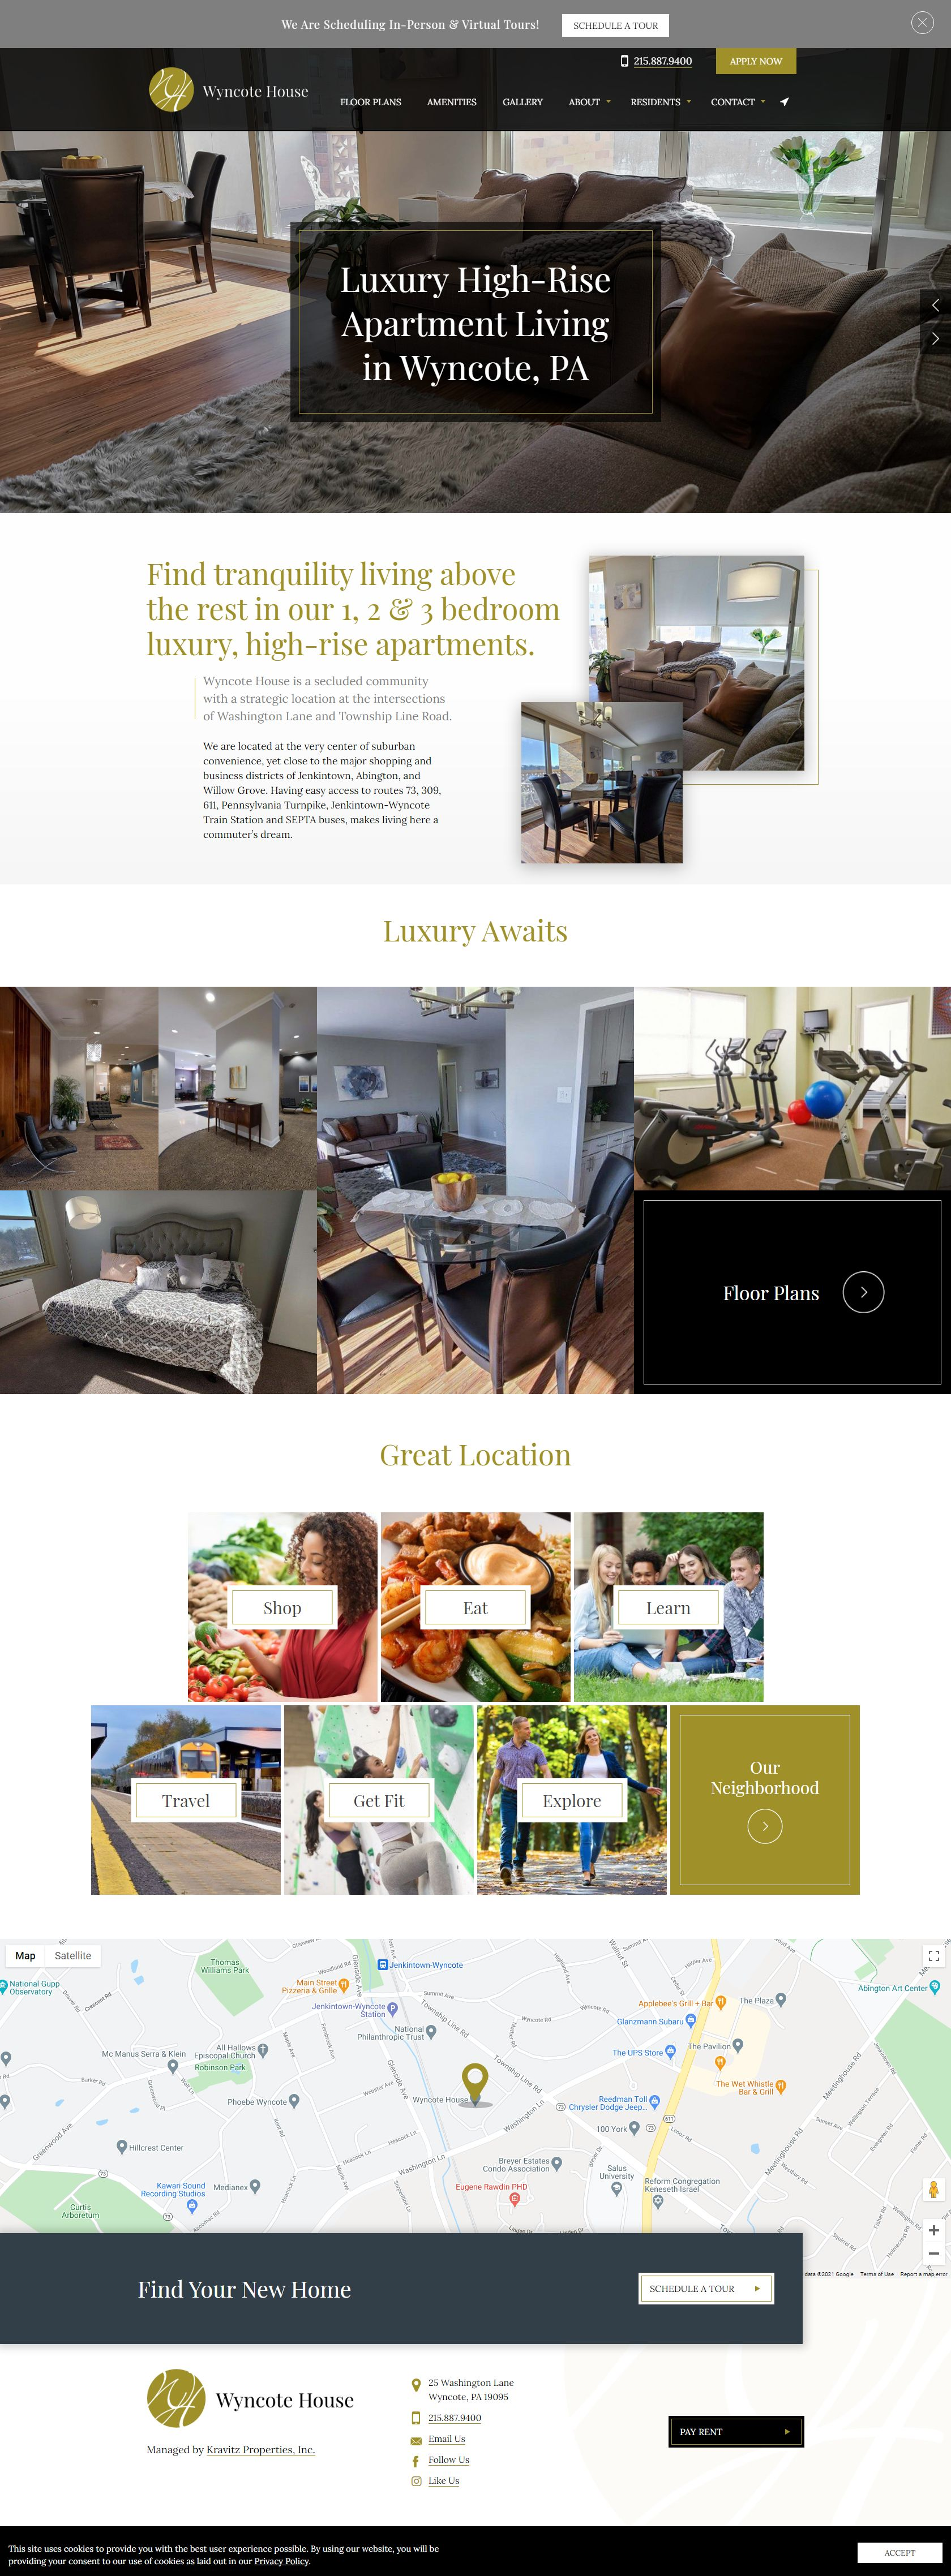 Wyncote House responsive website on an iPhone